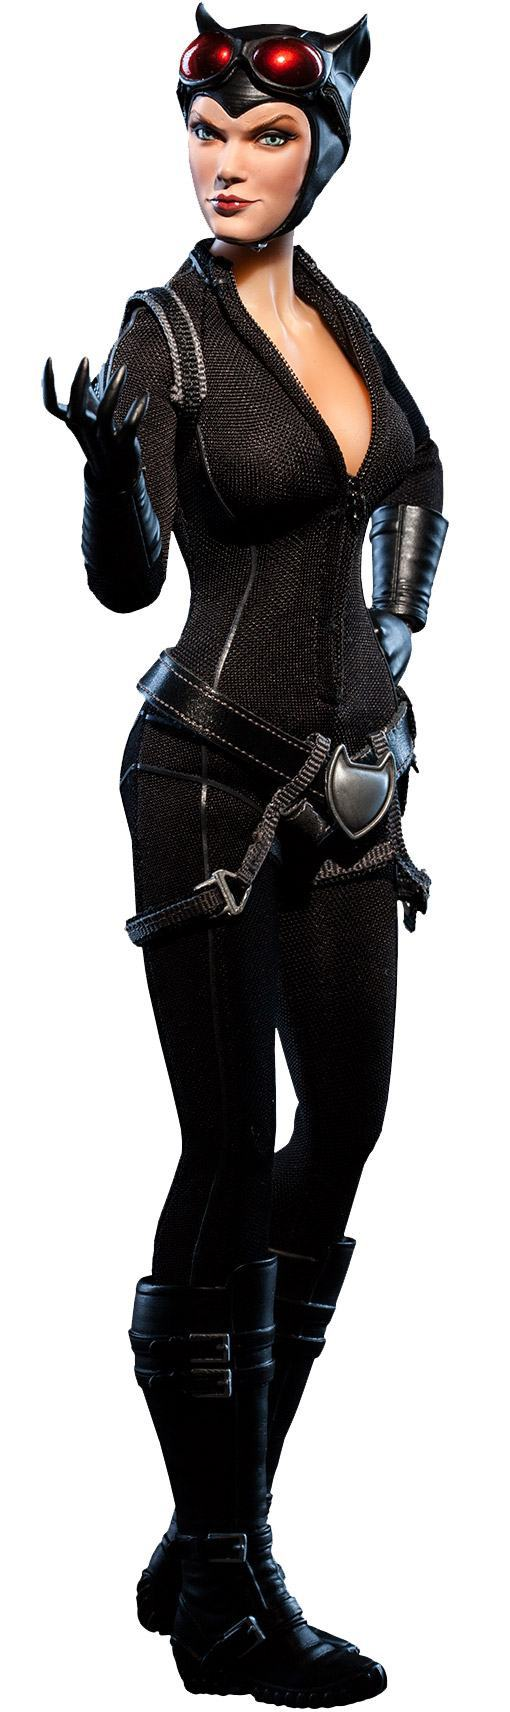 Catwoman-Sixth-Scale-Figure-Sideshow-12